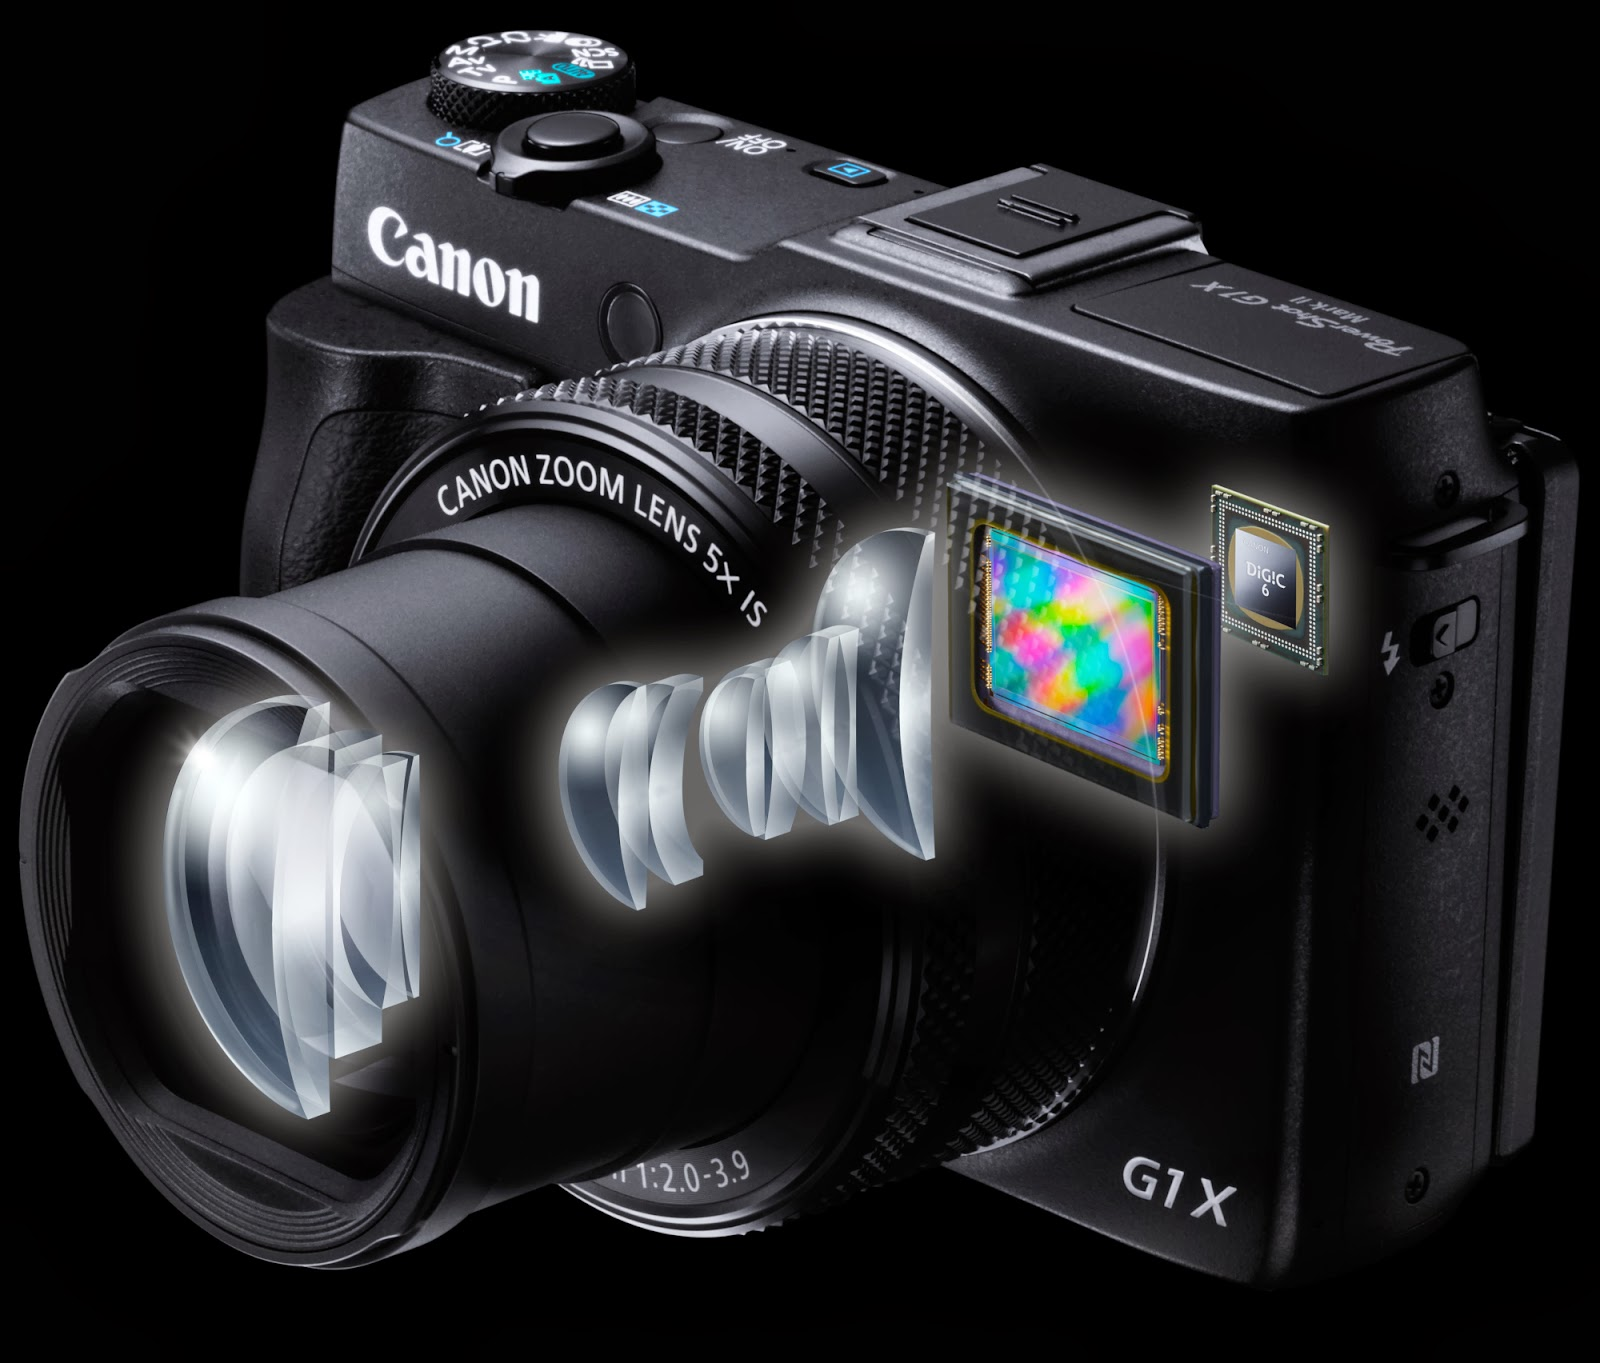 Canon PowerShot G1X Mark II, mini DSLR, NFC, Wi-Fi, Full HD video, Android, iOS, creative photo, new canon lens, touchscreen LCD